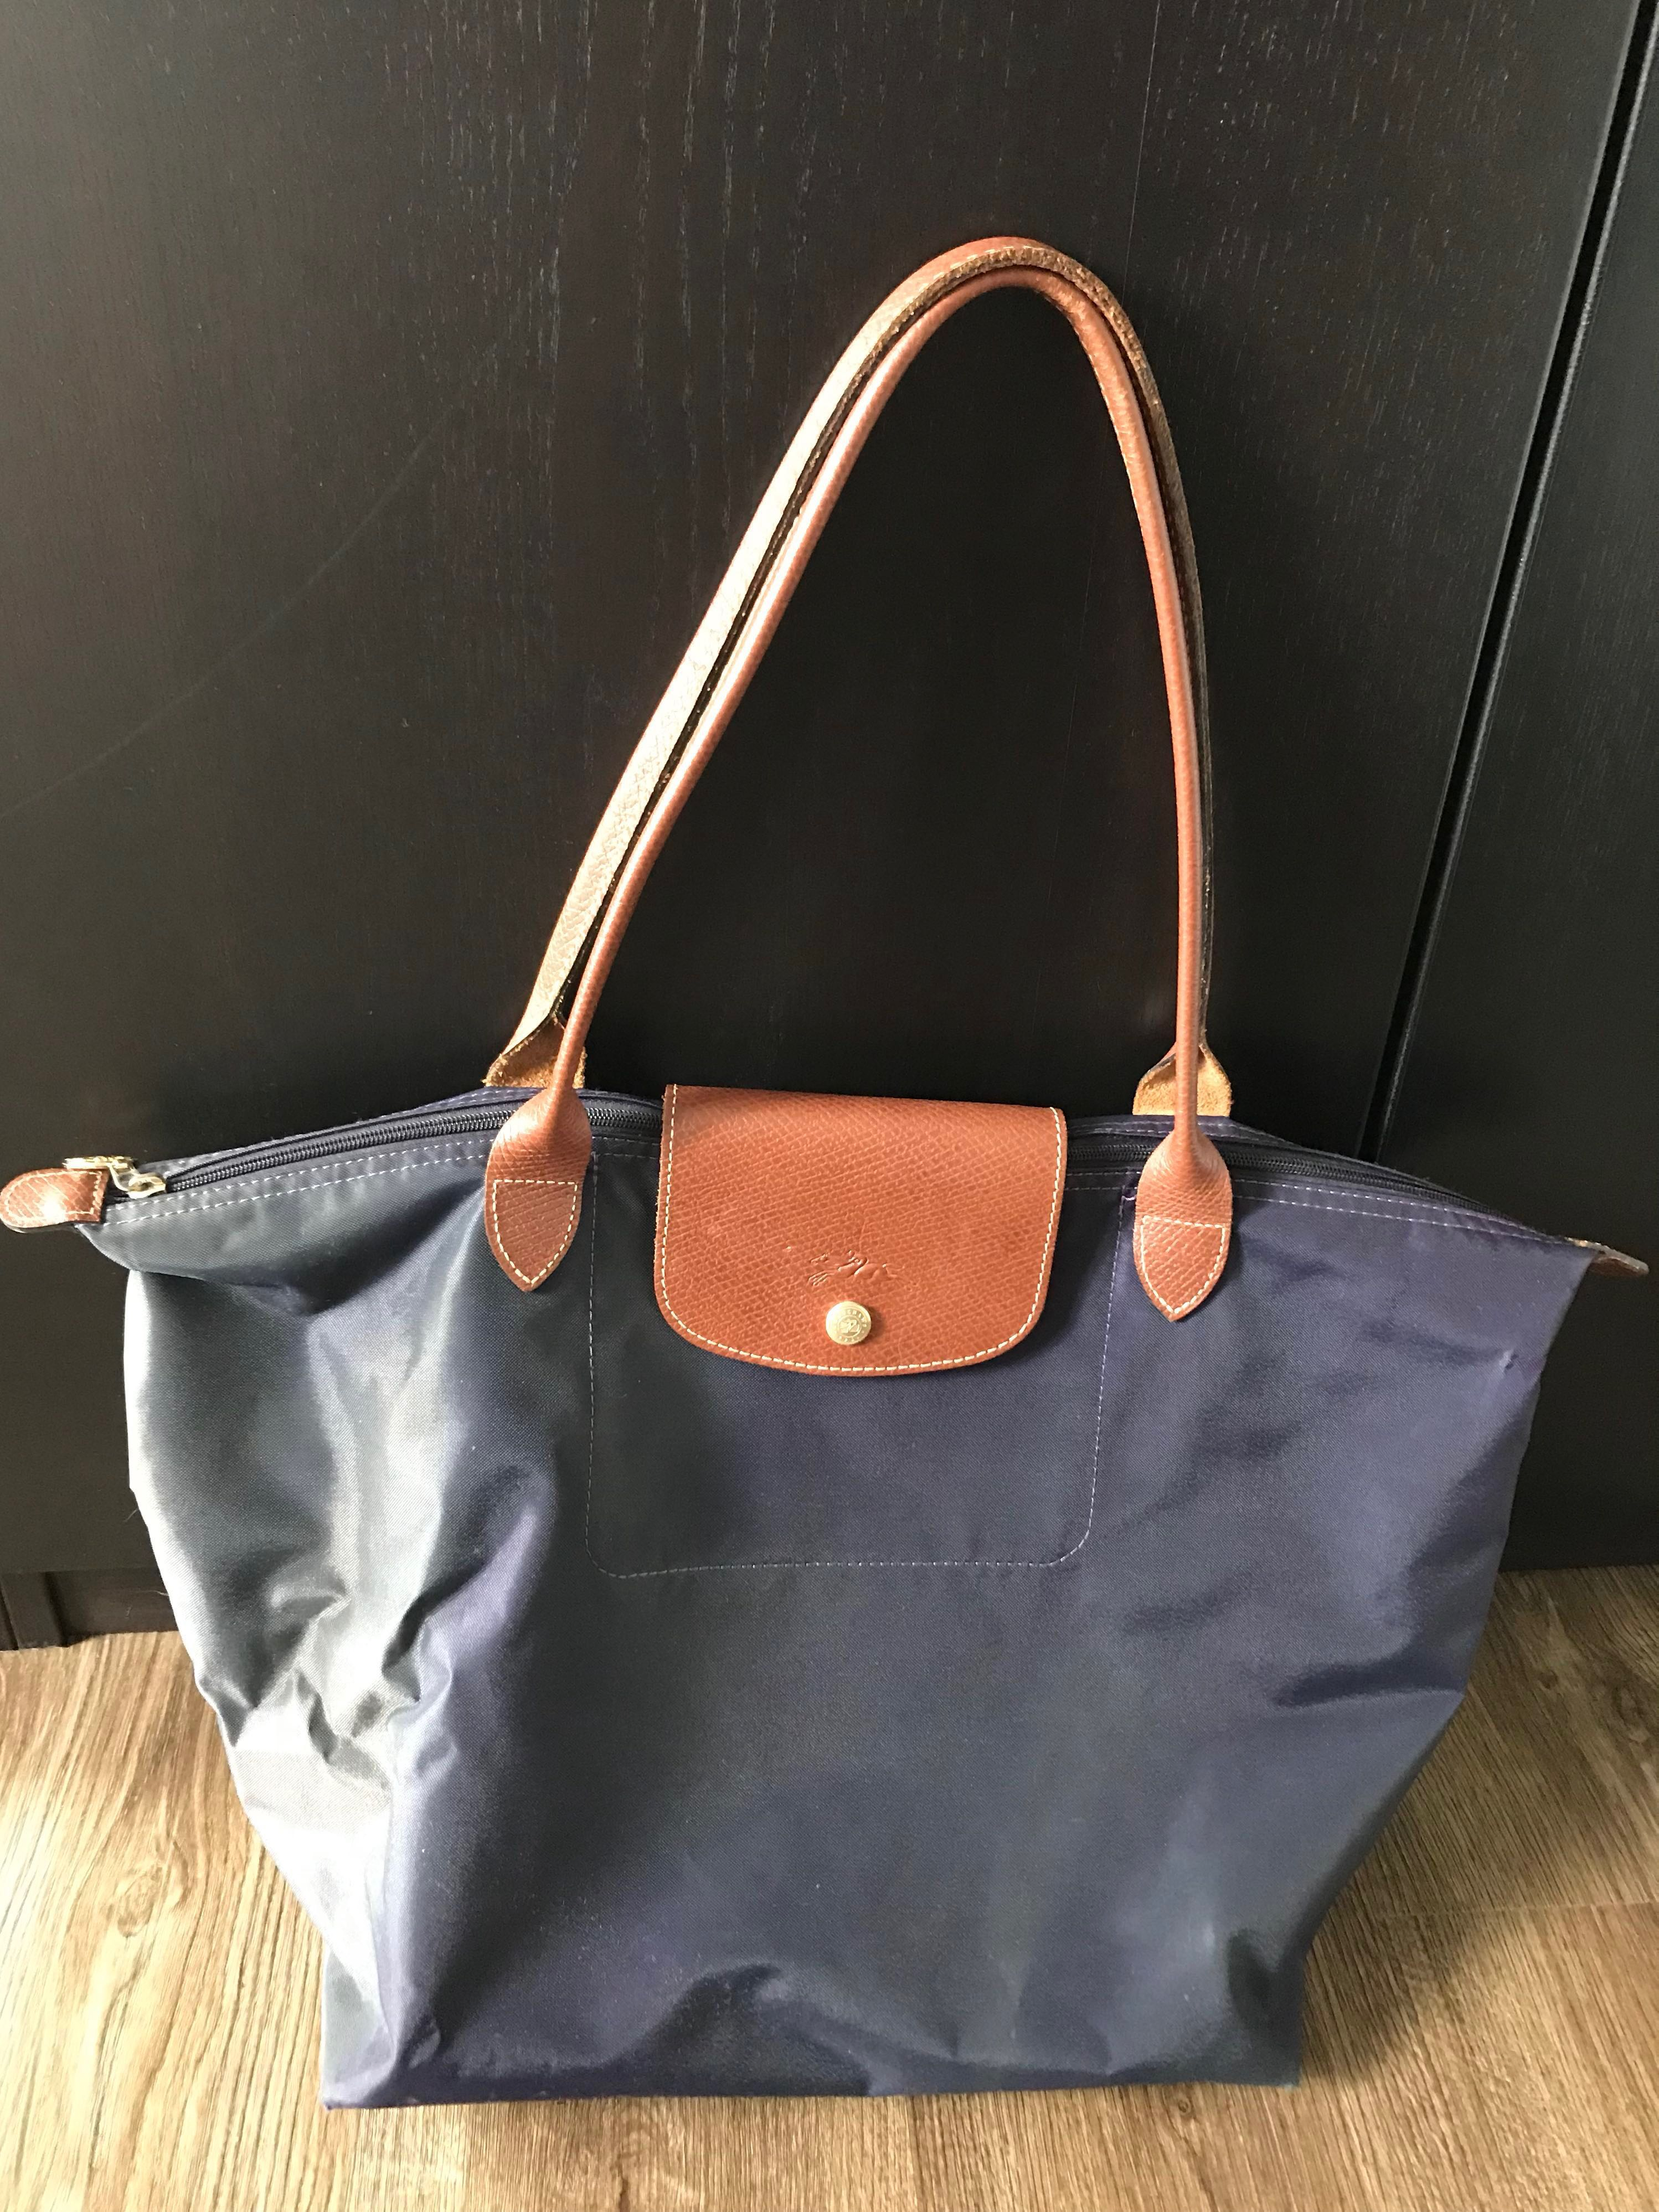 486fa280a8db Authentic Longchamp Bag